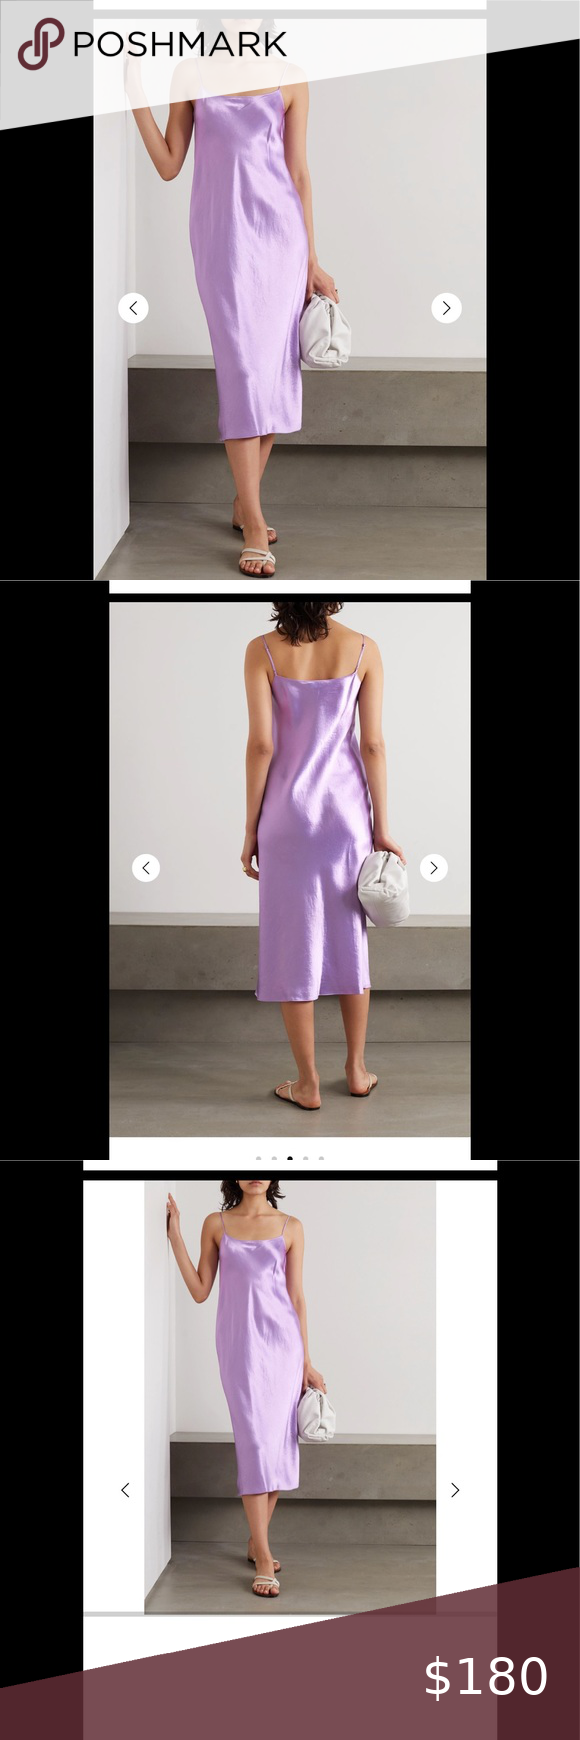 Nwt Vince Purple Slip Midi Dress Size Xs Brand New With Original Tags Always Open To Reasonable Offers Please Let Me Midi Dress Vince Dress Free People Boots [ 1740 x 580 Pixel ]